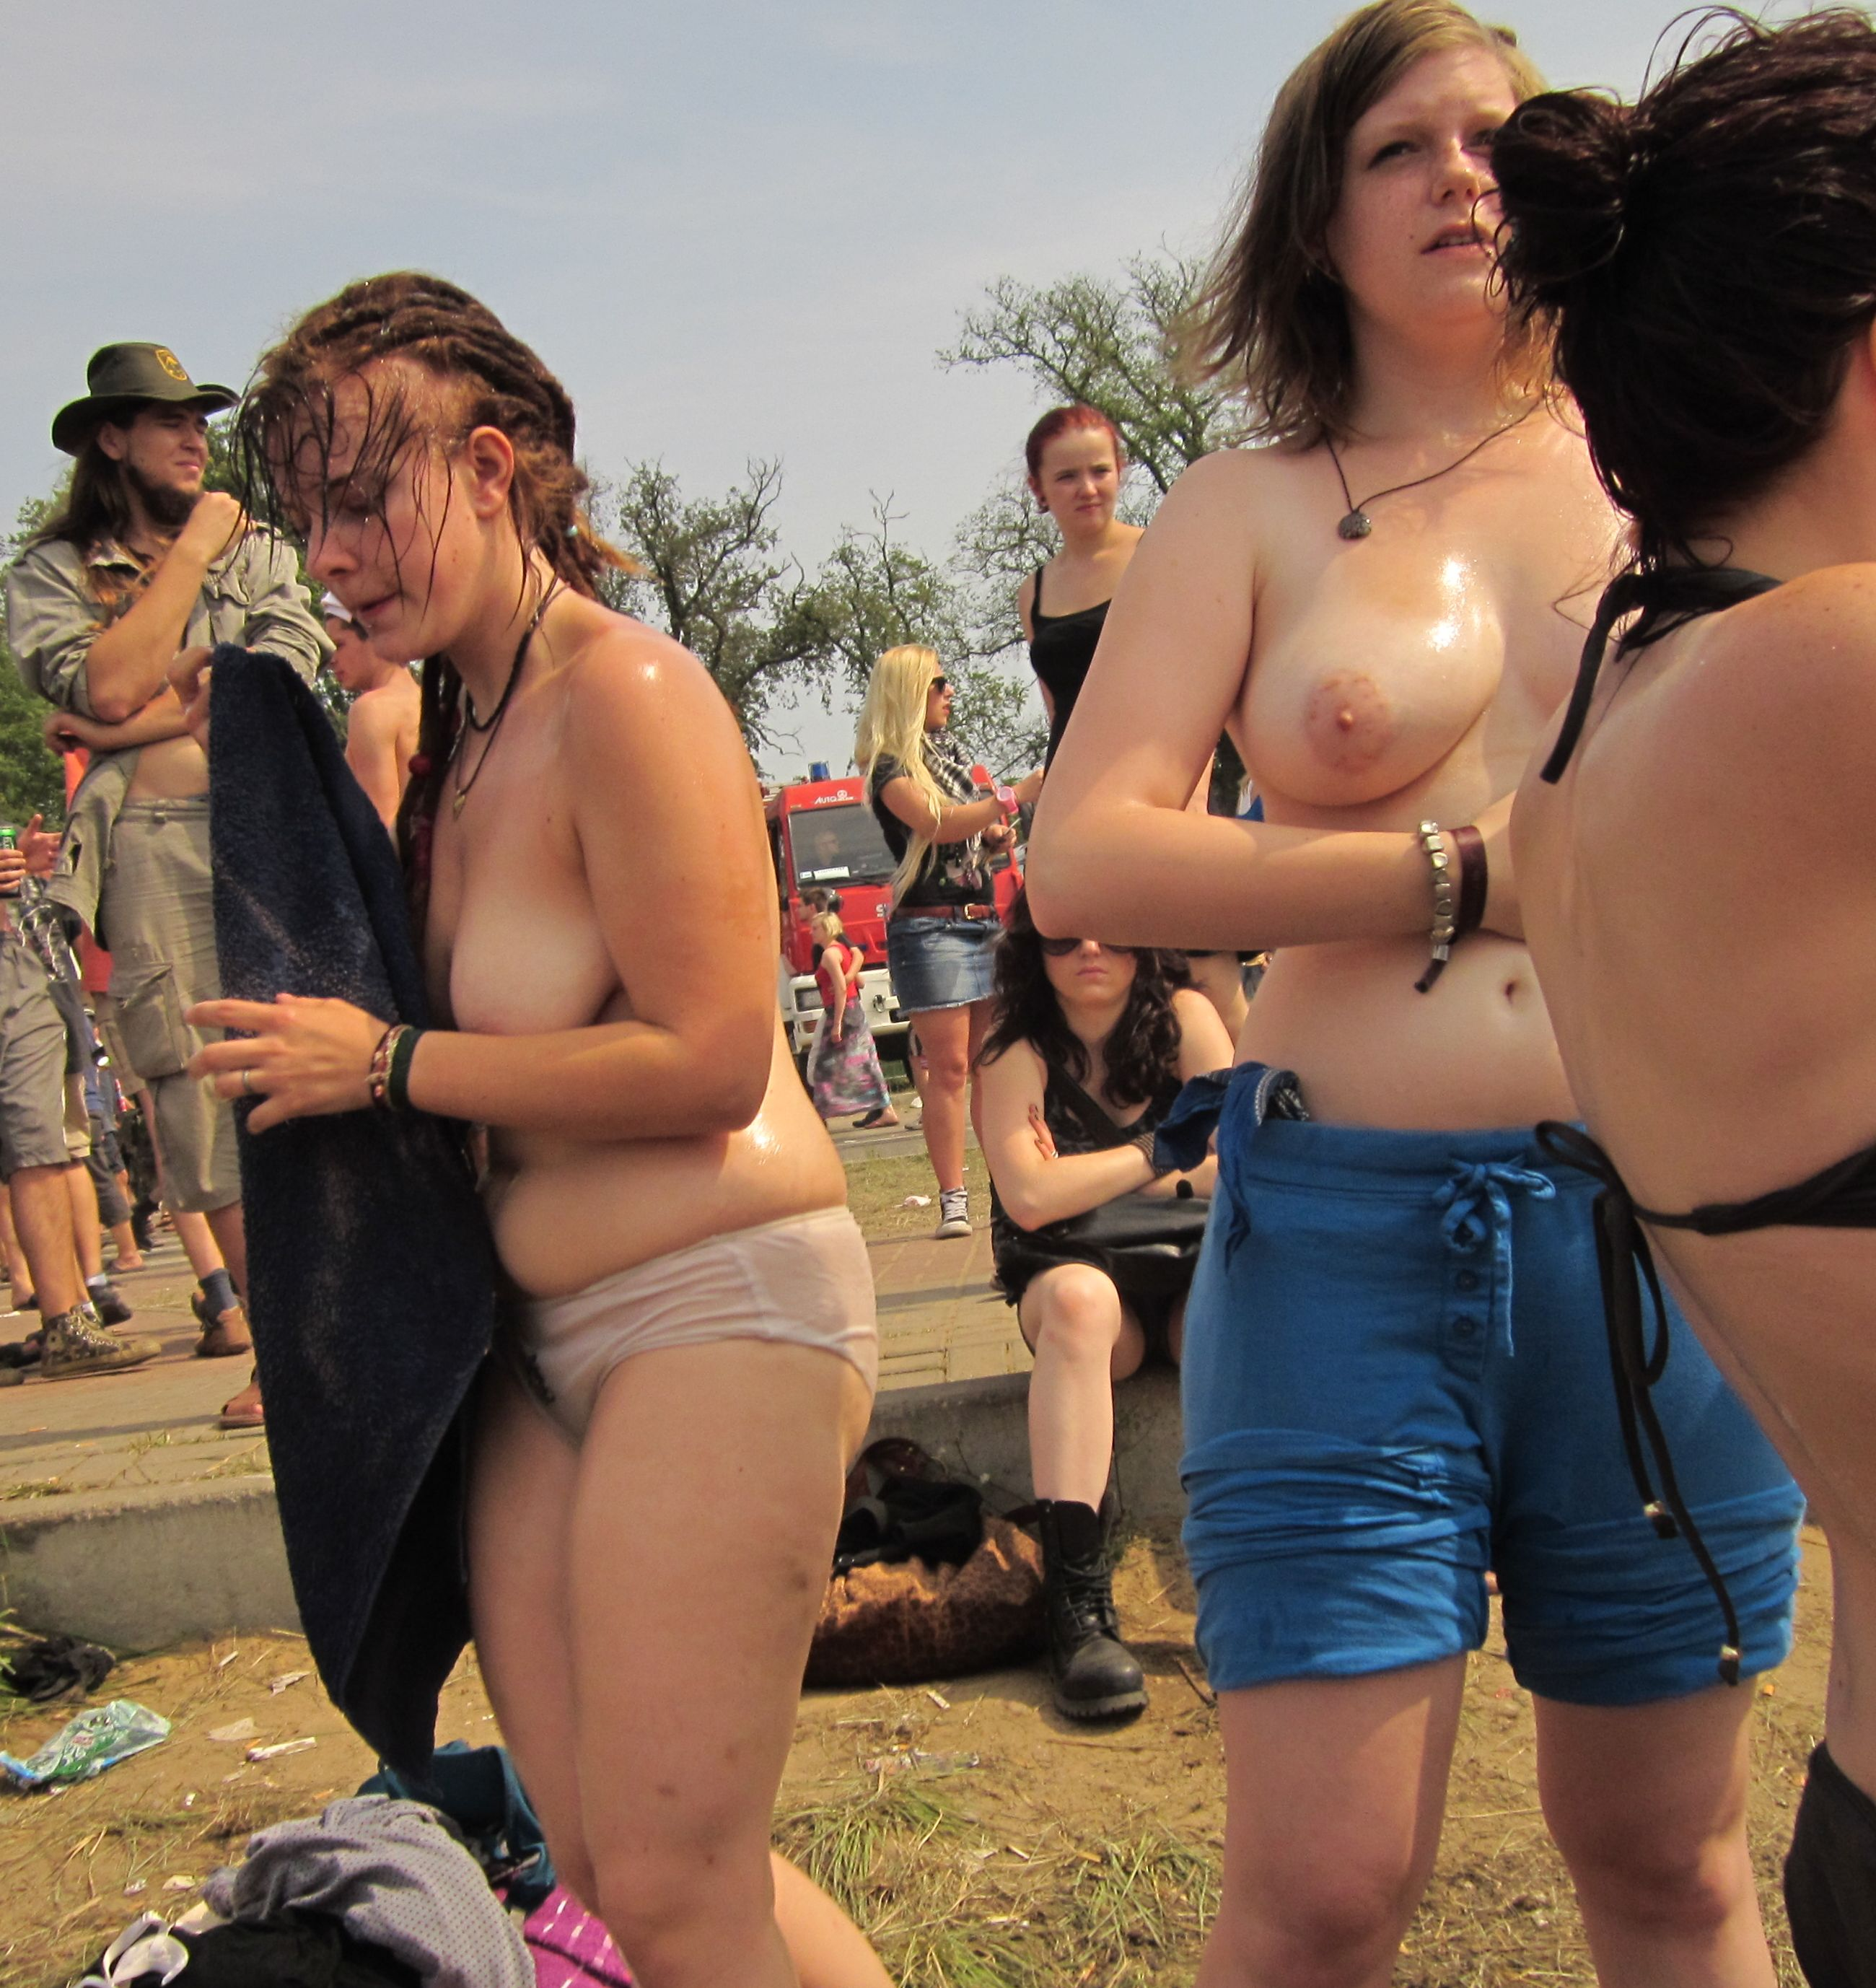 Festival nude sex pity, that